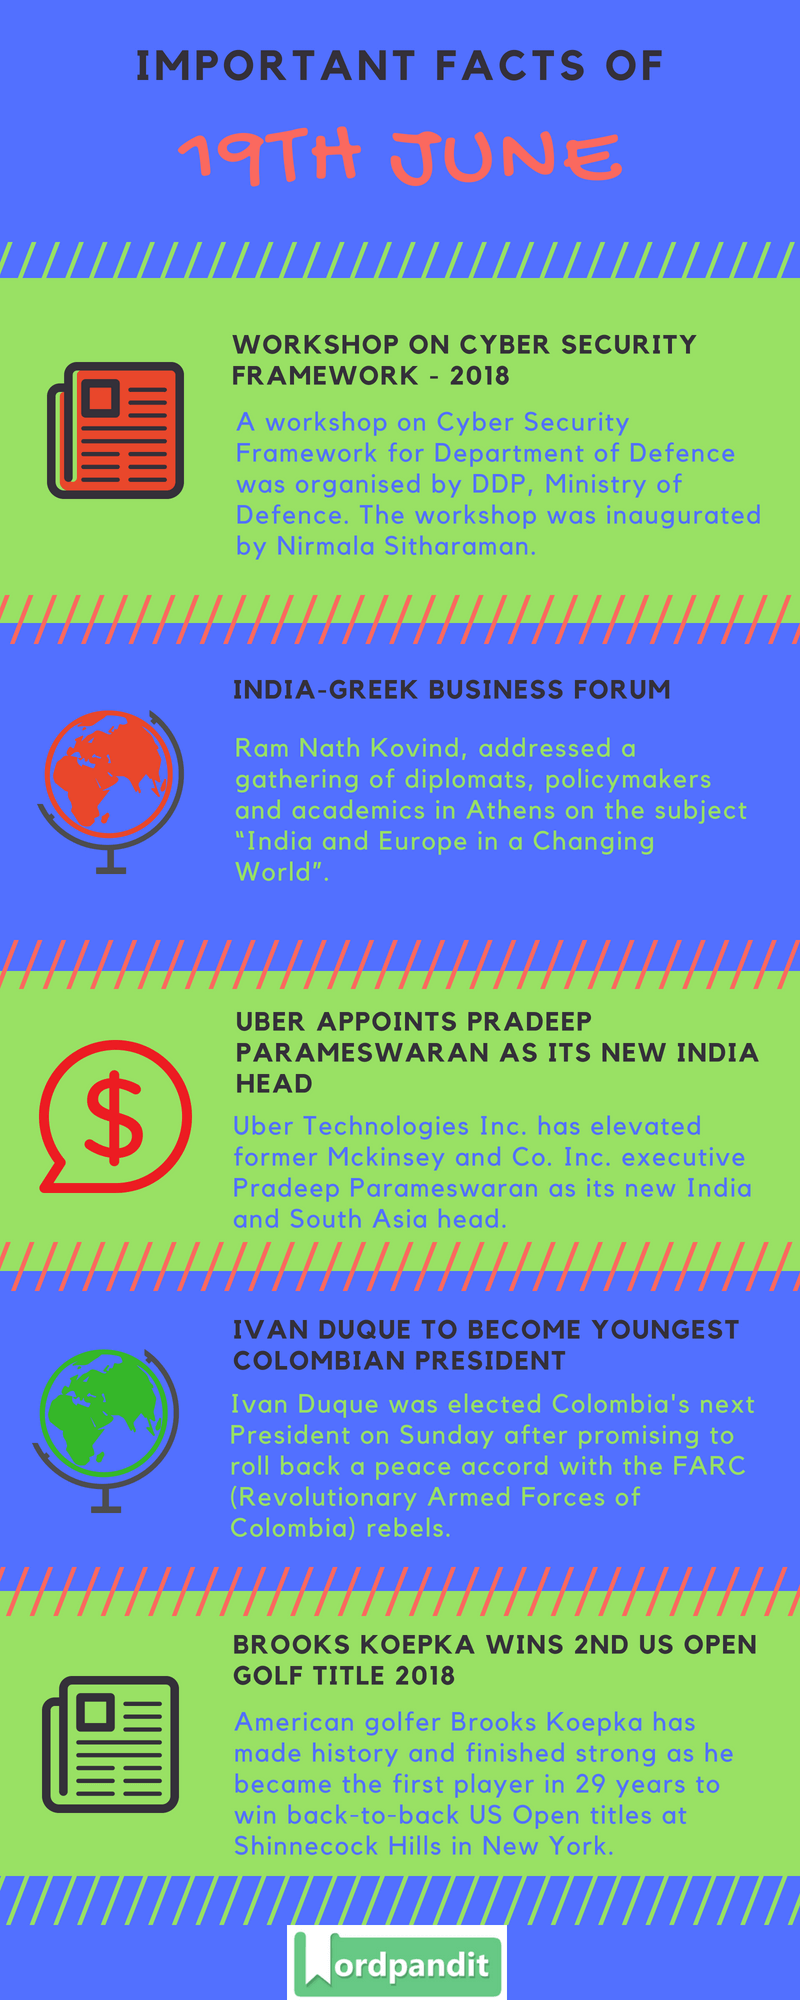 Daily Current Affairs 19 June 2018 Current Affairs Quiz June 19 2018 Current Affairs Infographic